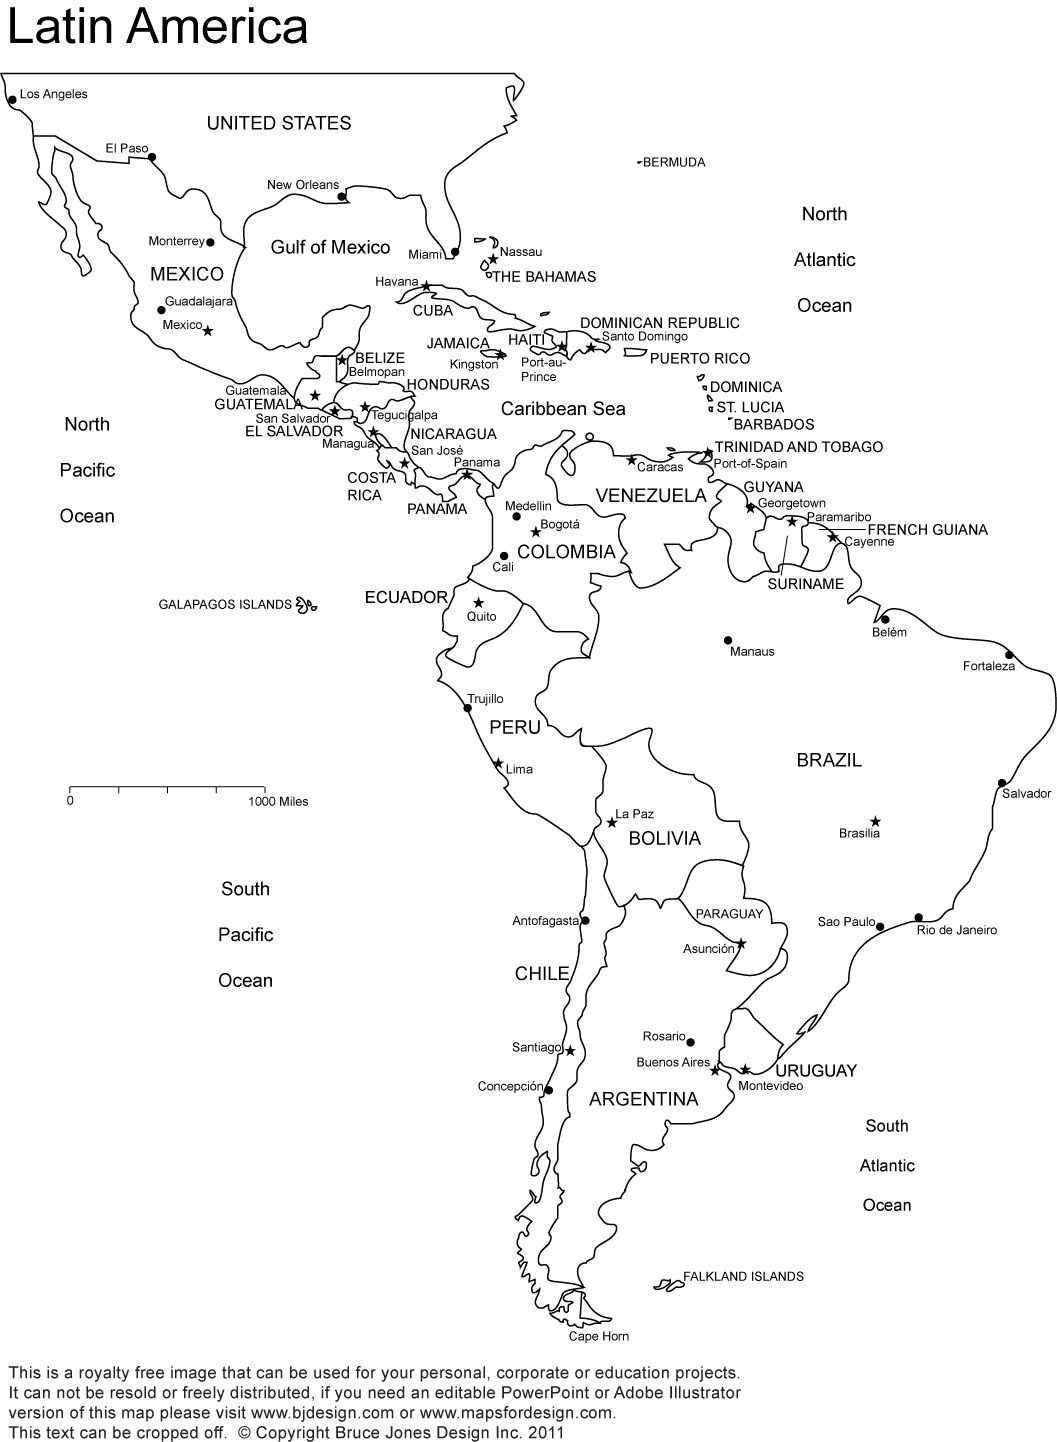 Latin America Printable Blank Map South America Brazil - North america physical map test